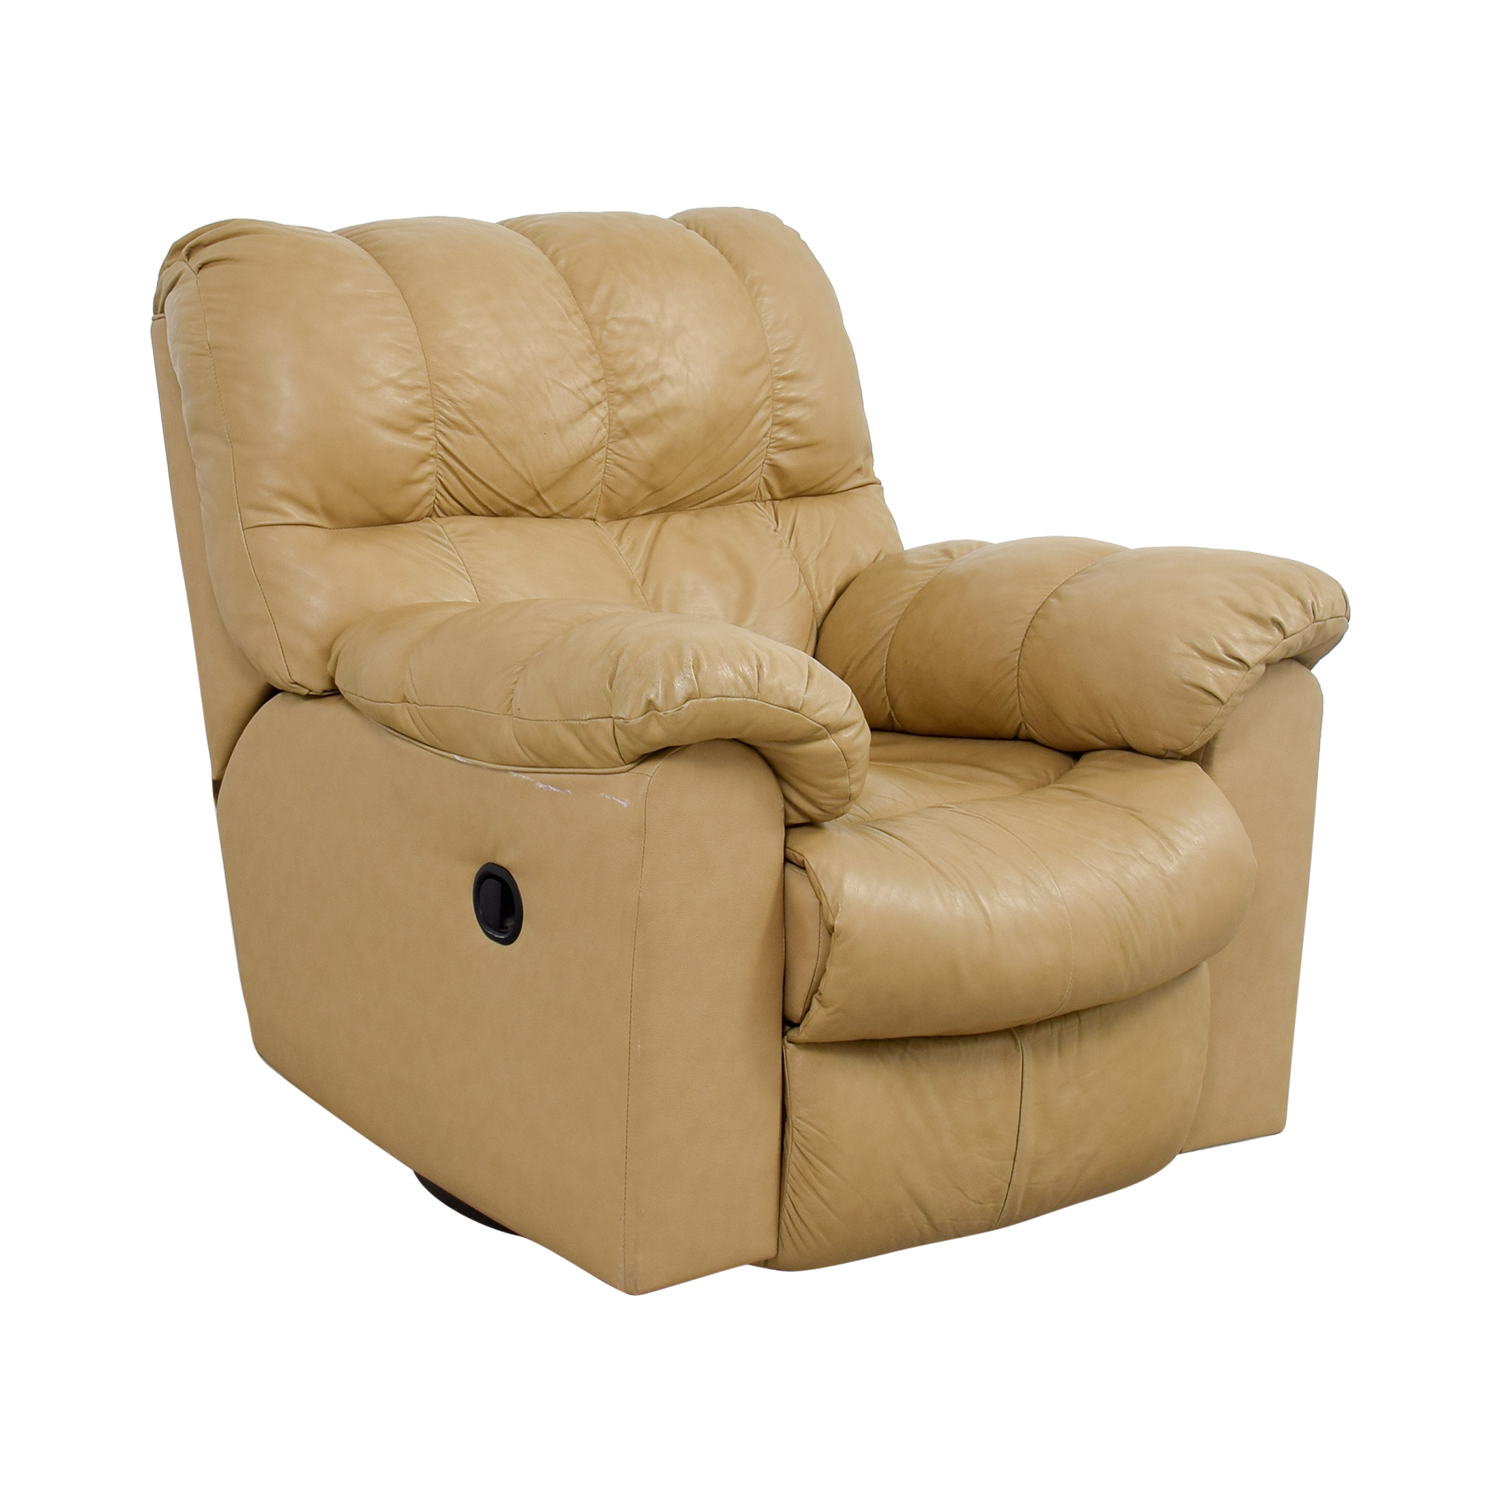 90 off ashley furniture ashley furniture tan leather for Furniture 90 off